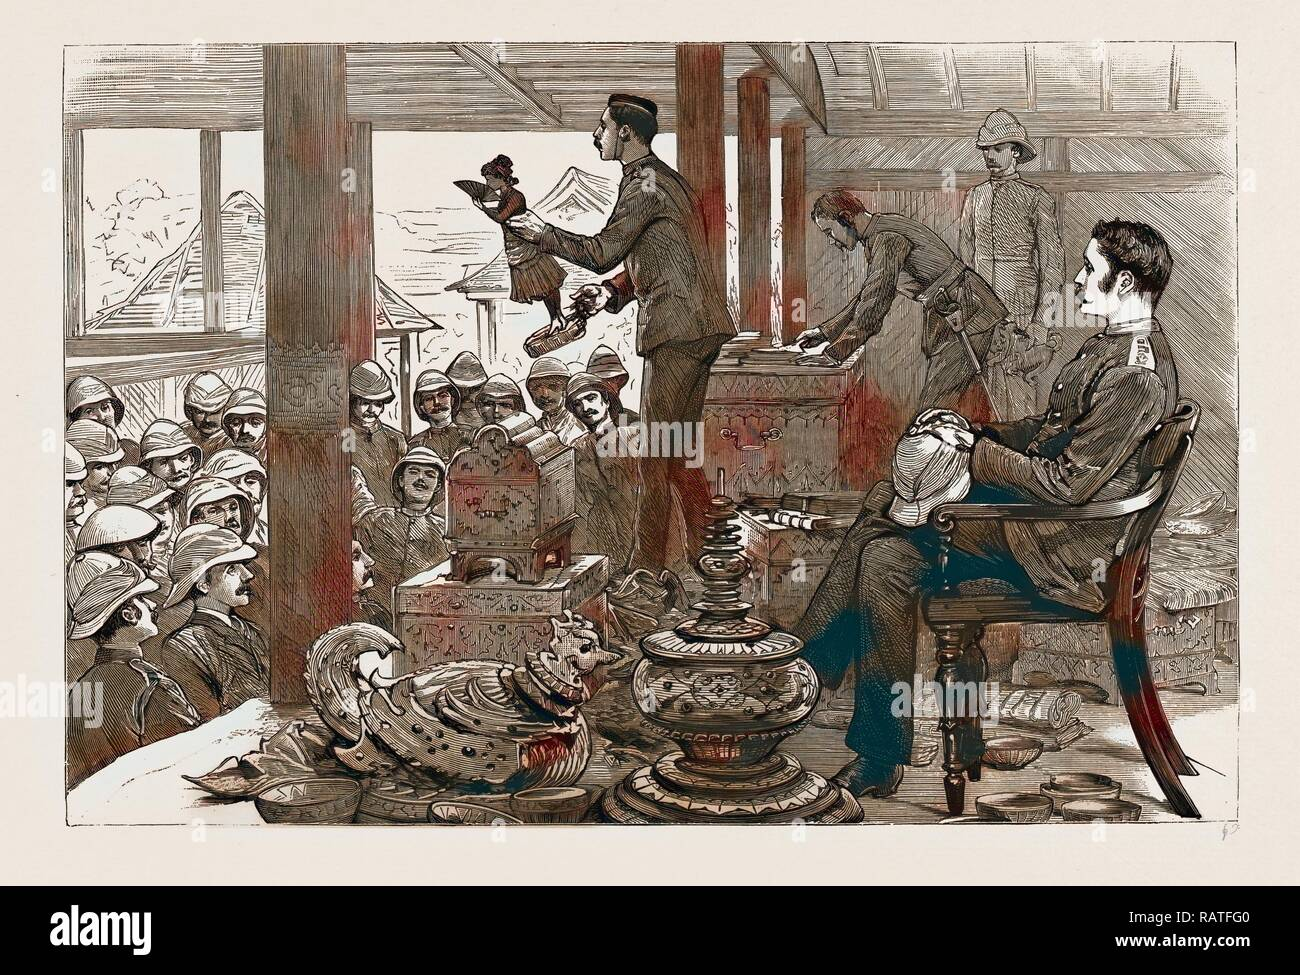 WITH LORD DUFFERIN IN BURMA: A LOOT AUCTION IN THE PALACE, MANDALAY, 1886. Reimagined by Gibon. Classic art with a reimagined - Stock Image